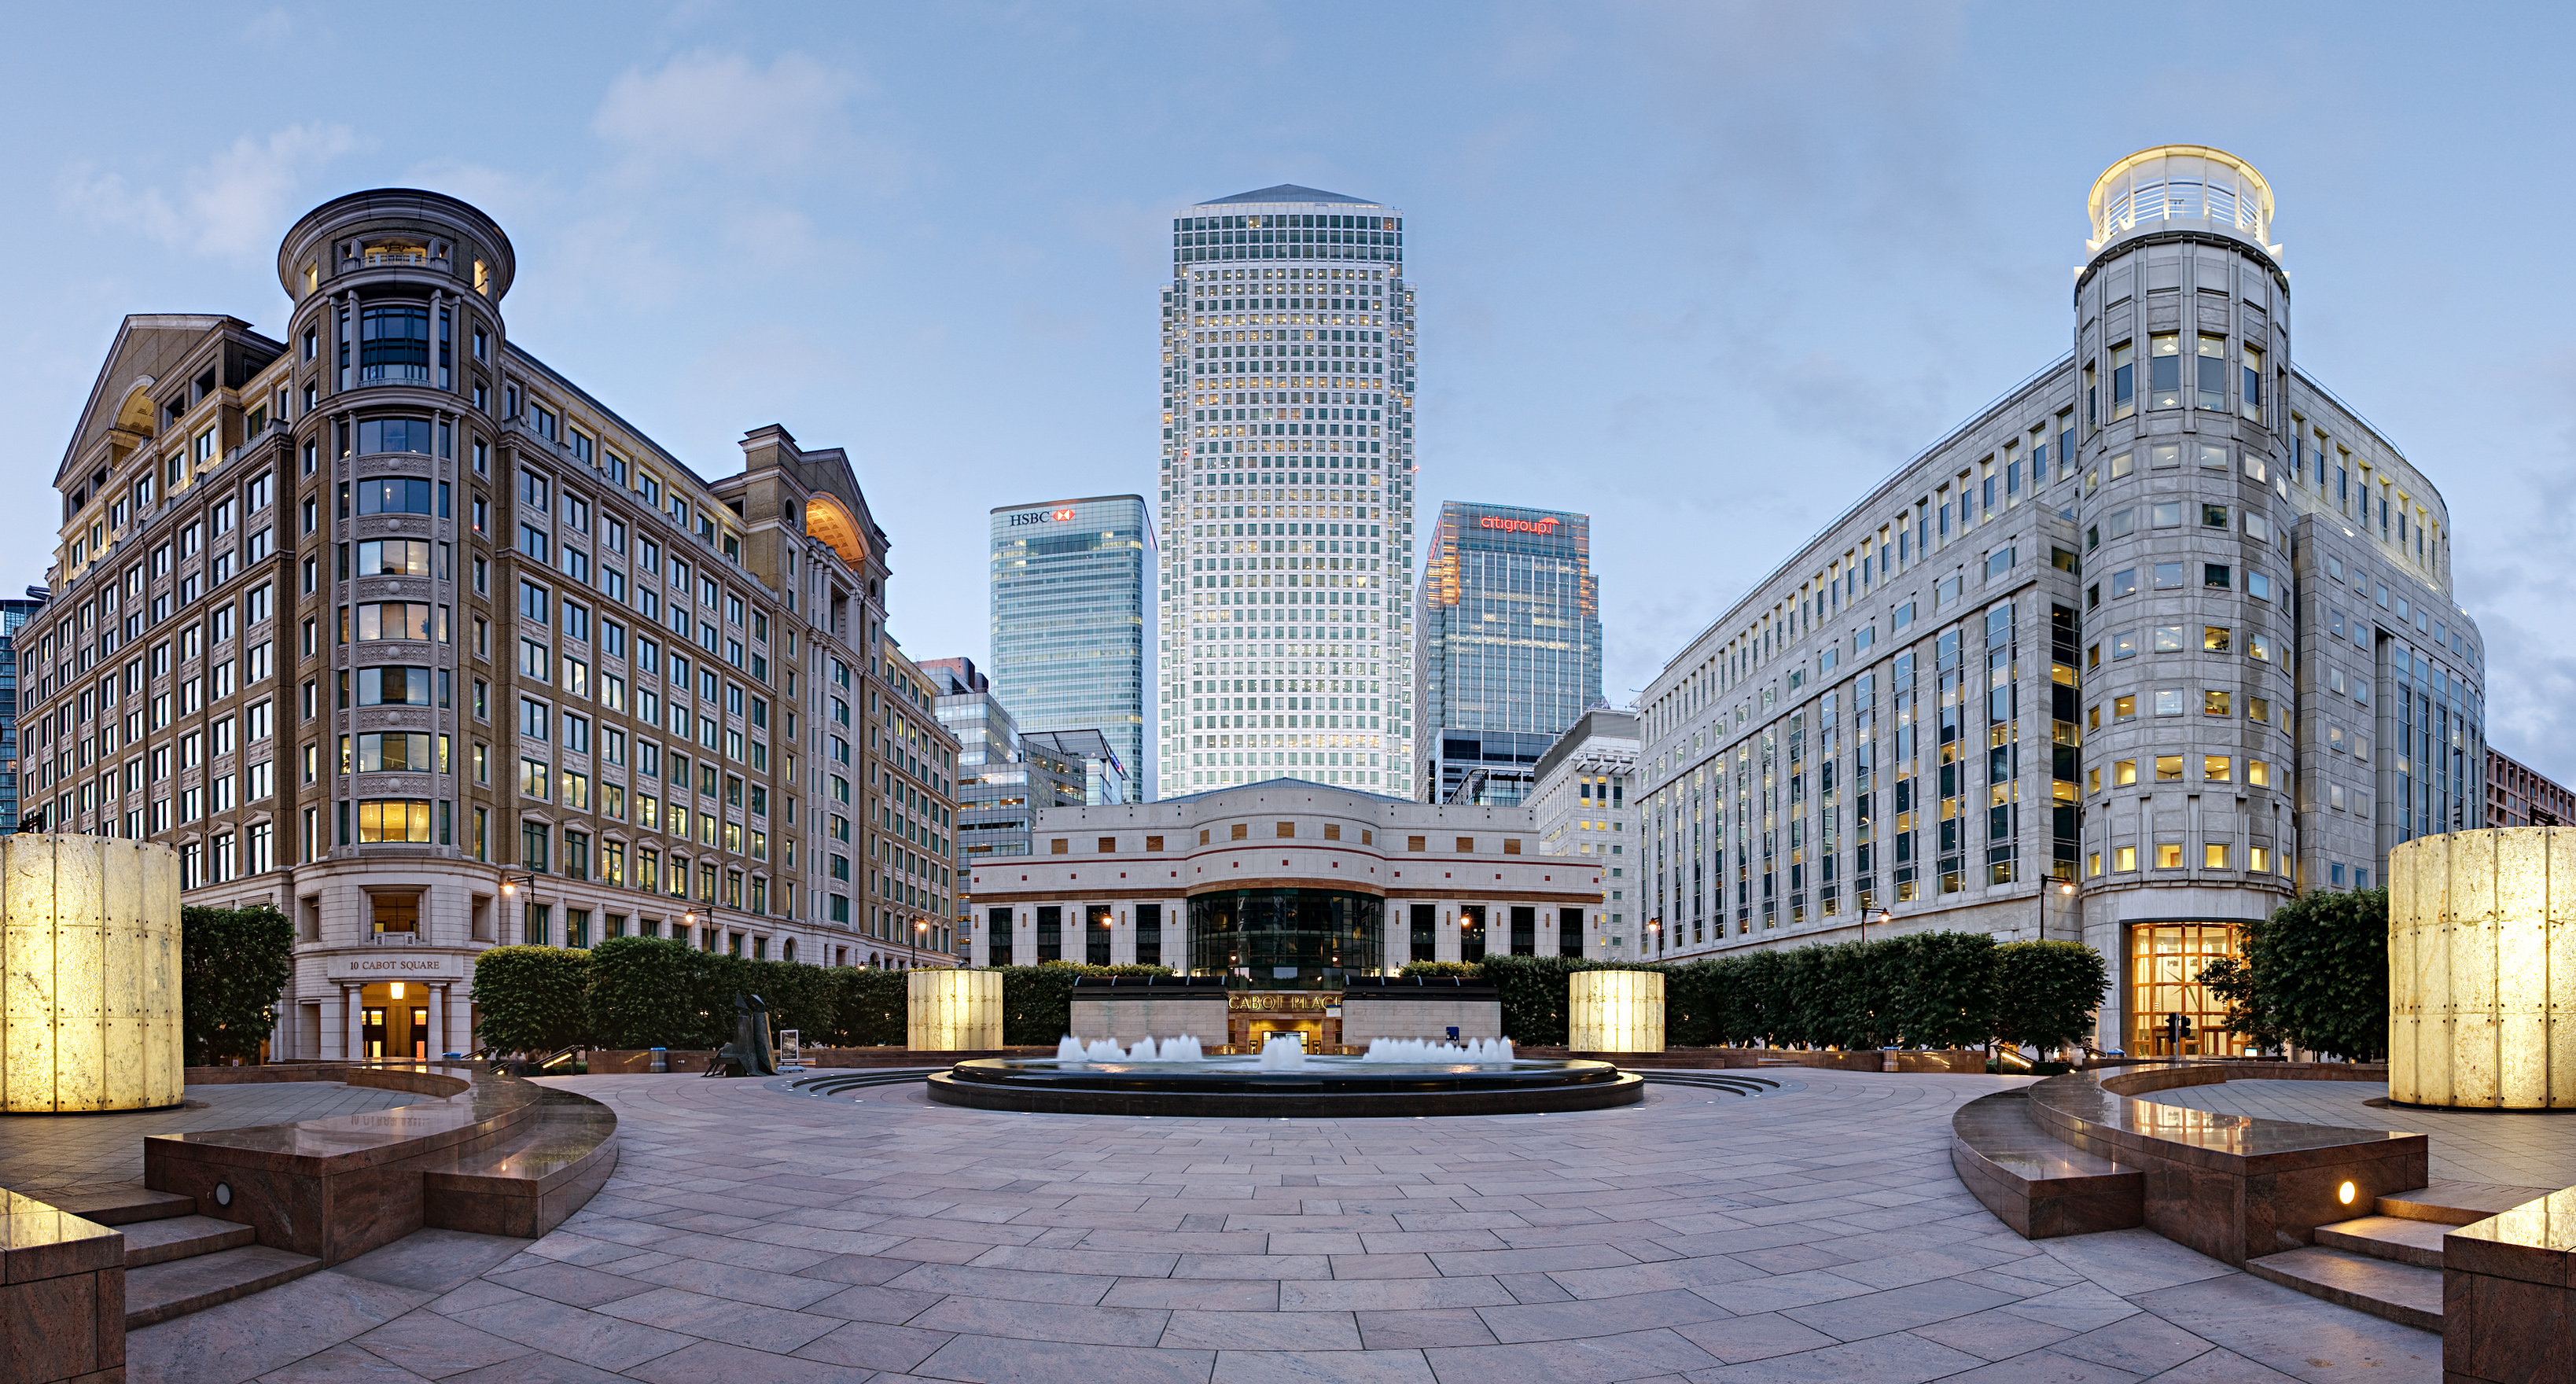 Cabot Square Canary Wharf London